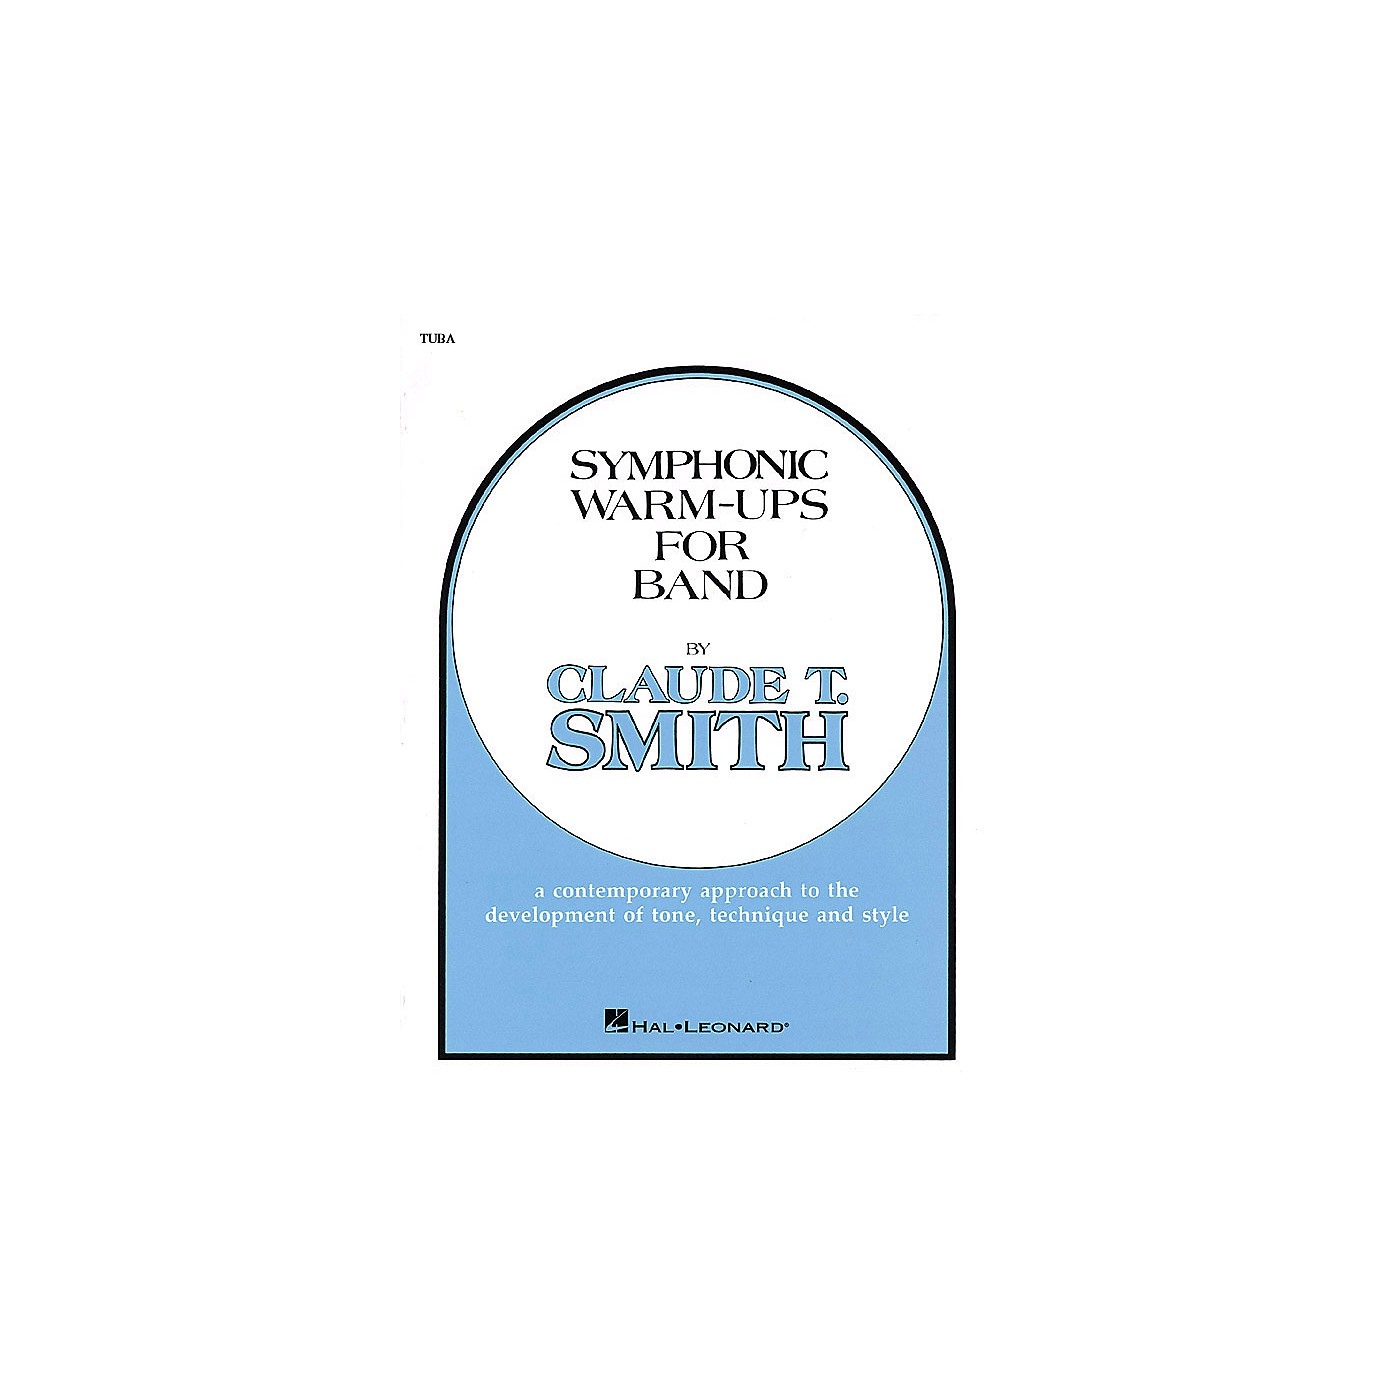 Hal Leonard Symphonic Warm-Ups for Band (Tuba (B.C.)) Concert Band Level 2-3 Composed by Claude T. Smith thumbnail